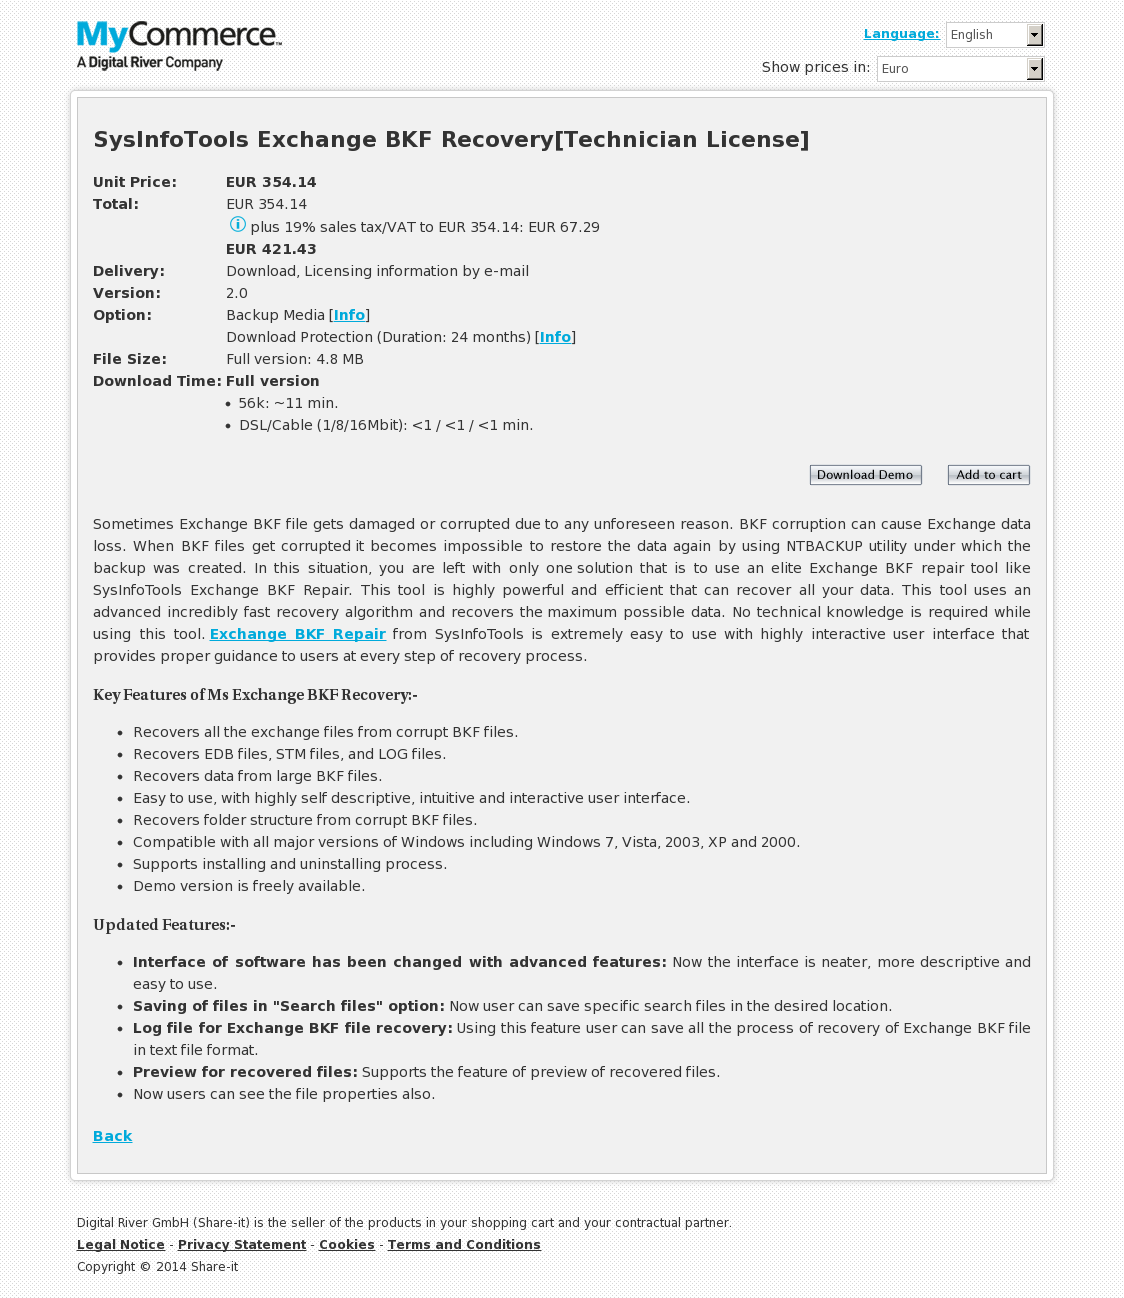 SysInfoTools Exchange BKF Recovery[Technician License]